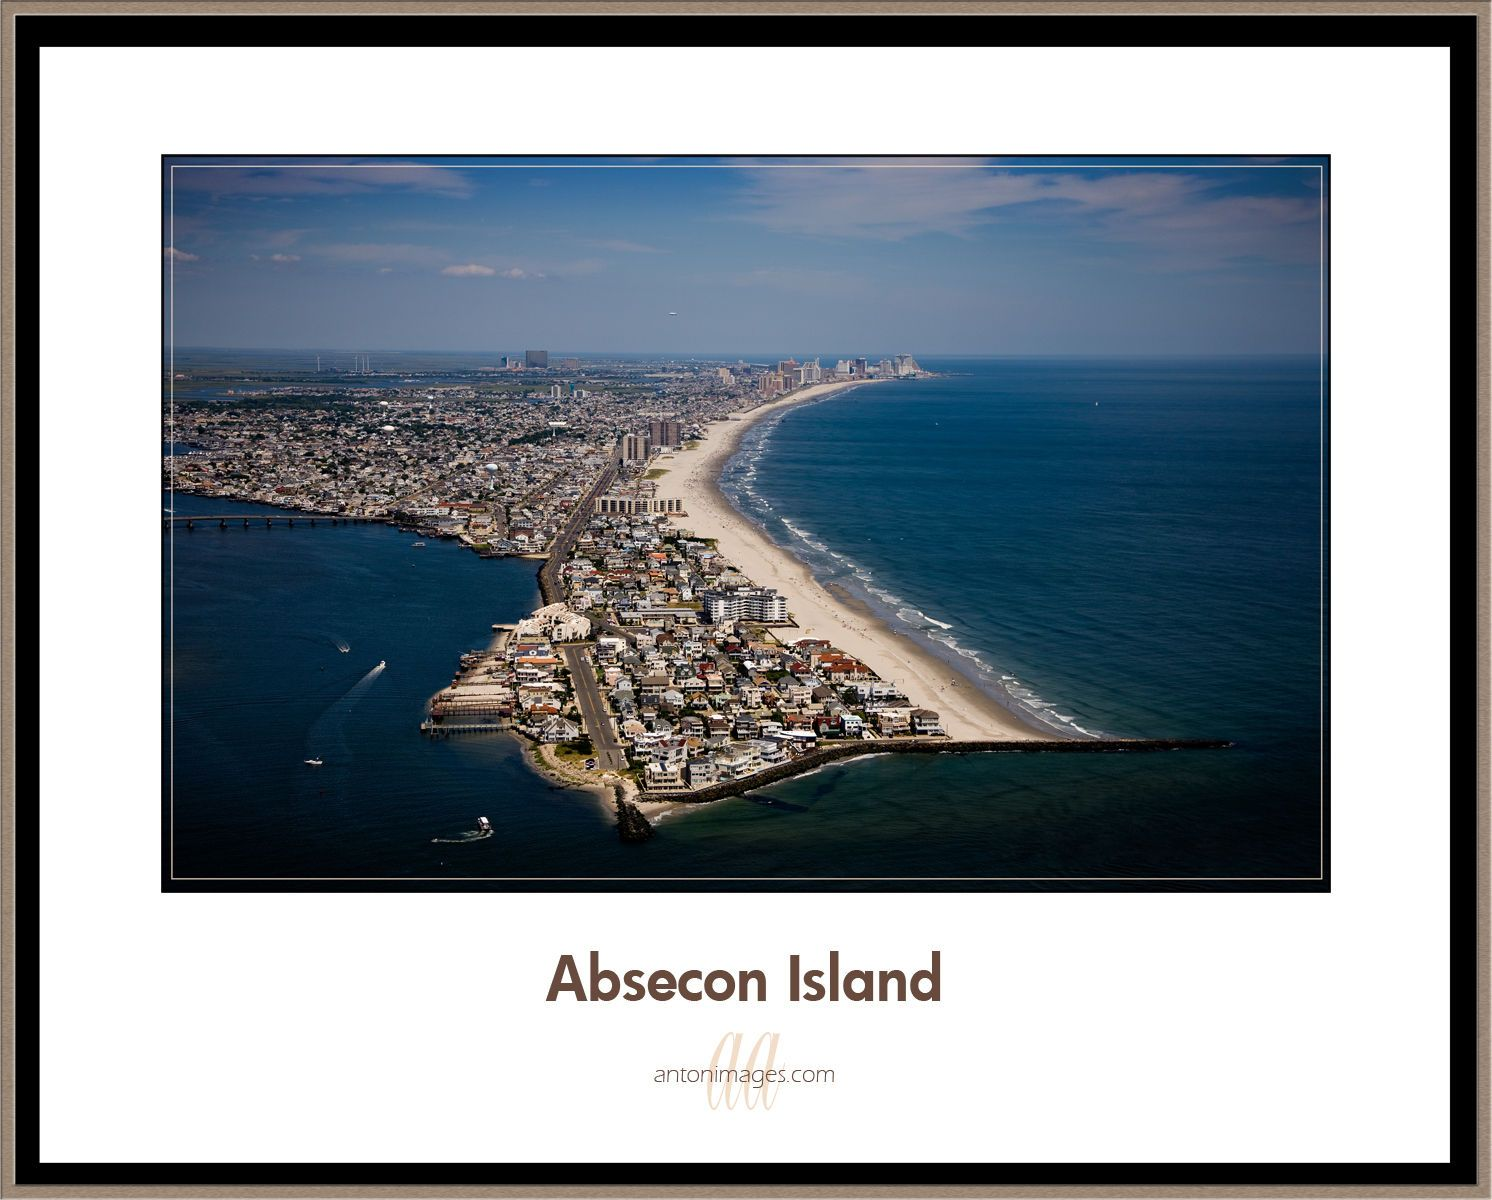 1absecon_island_.jpg